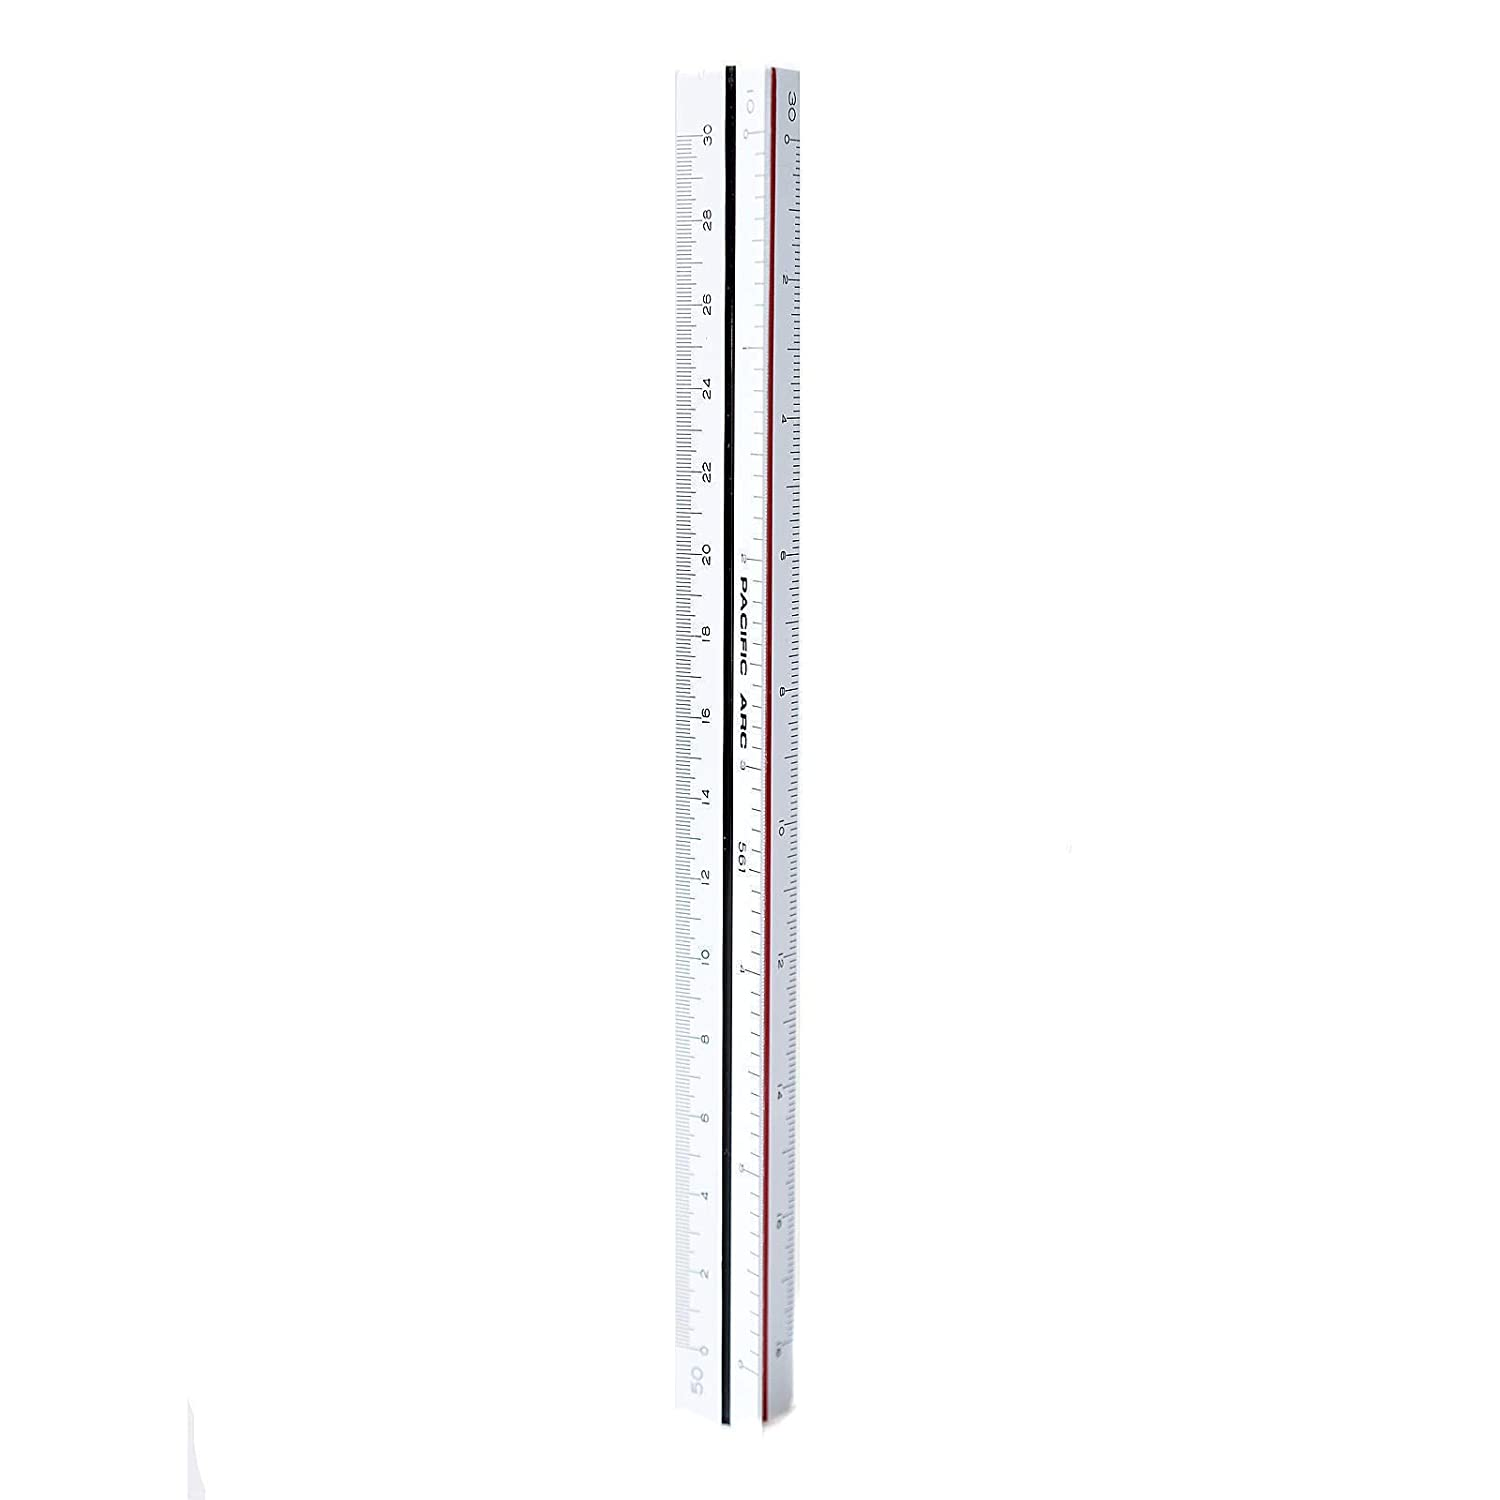 Pacific Arc 6 Inch Architects Scale triangular scale